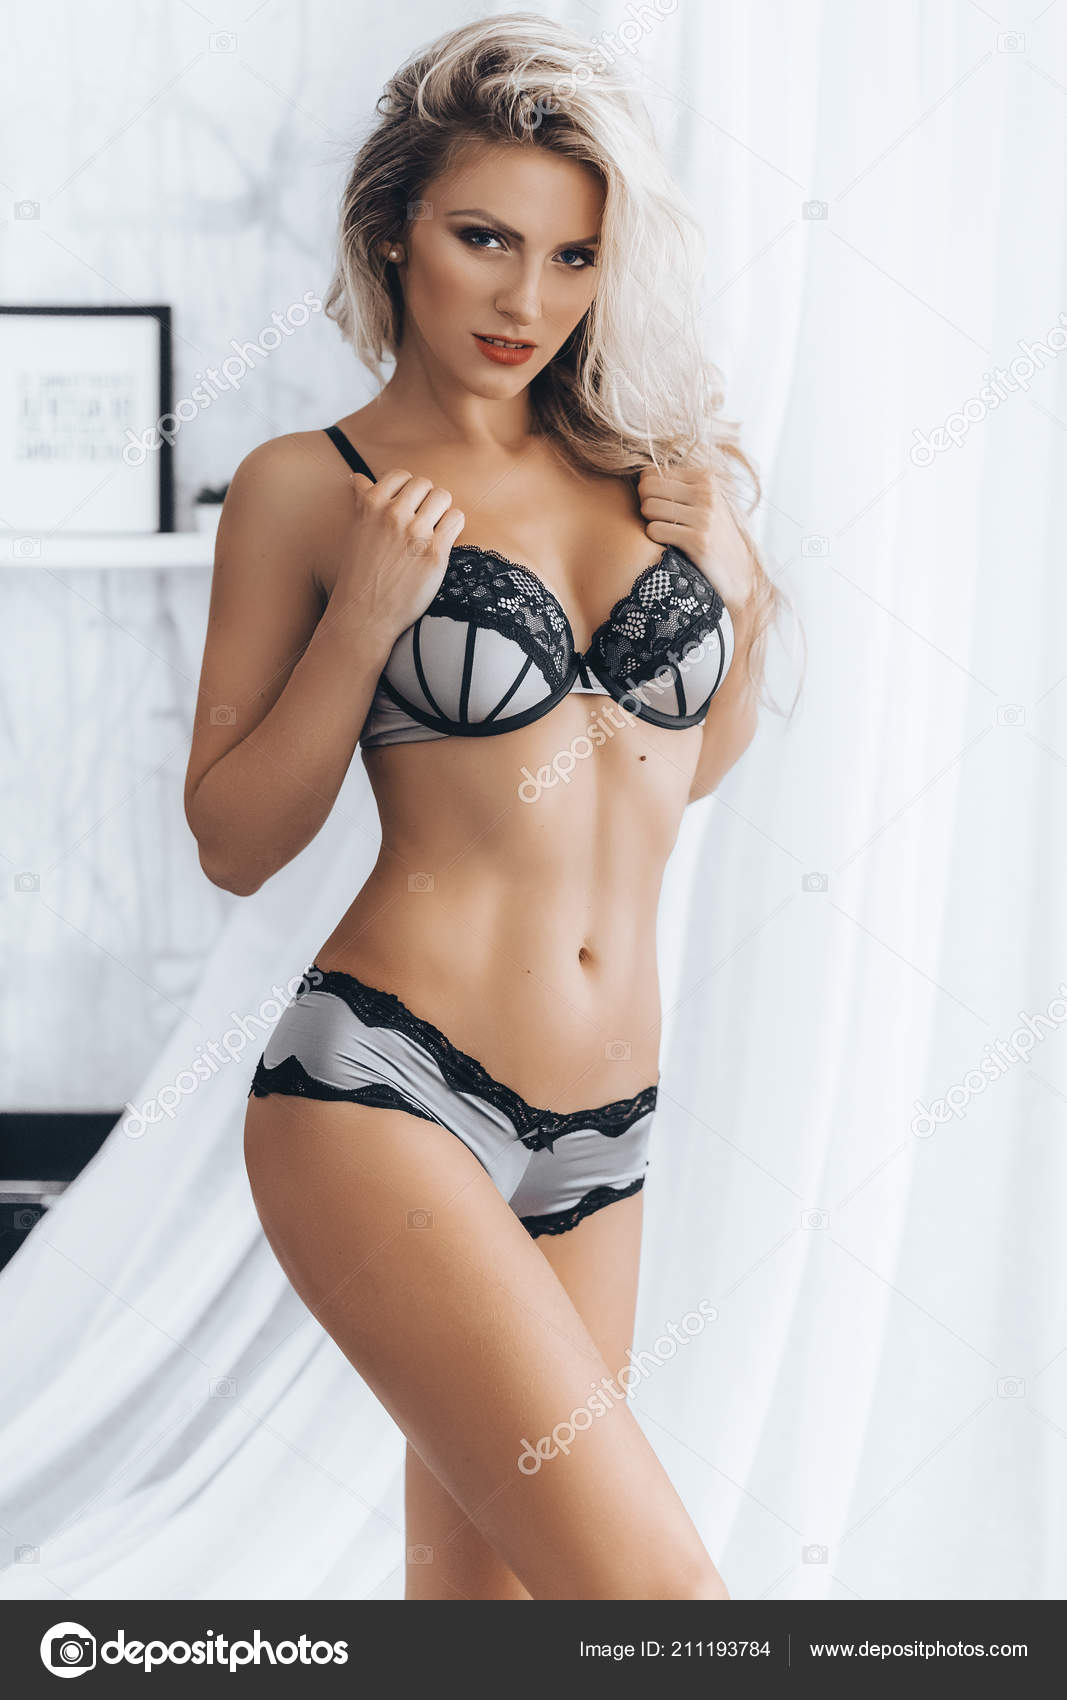 Beautiful Young Woman Posing Sexy Lingerie Studio Stock Photo Image By C Forewer 211193784